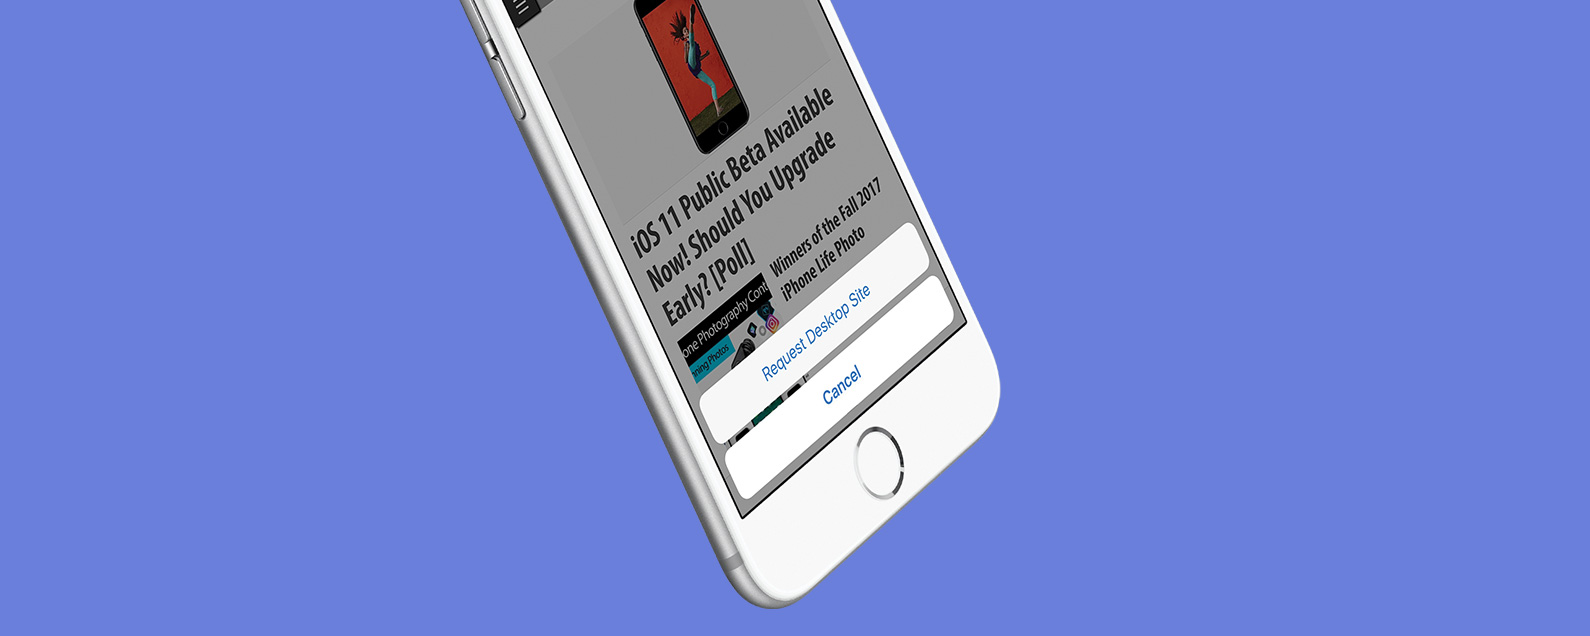 how to see hidden files on iphone